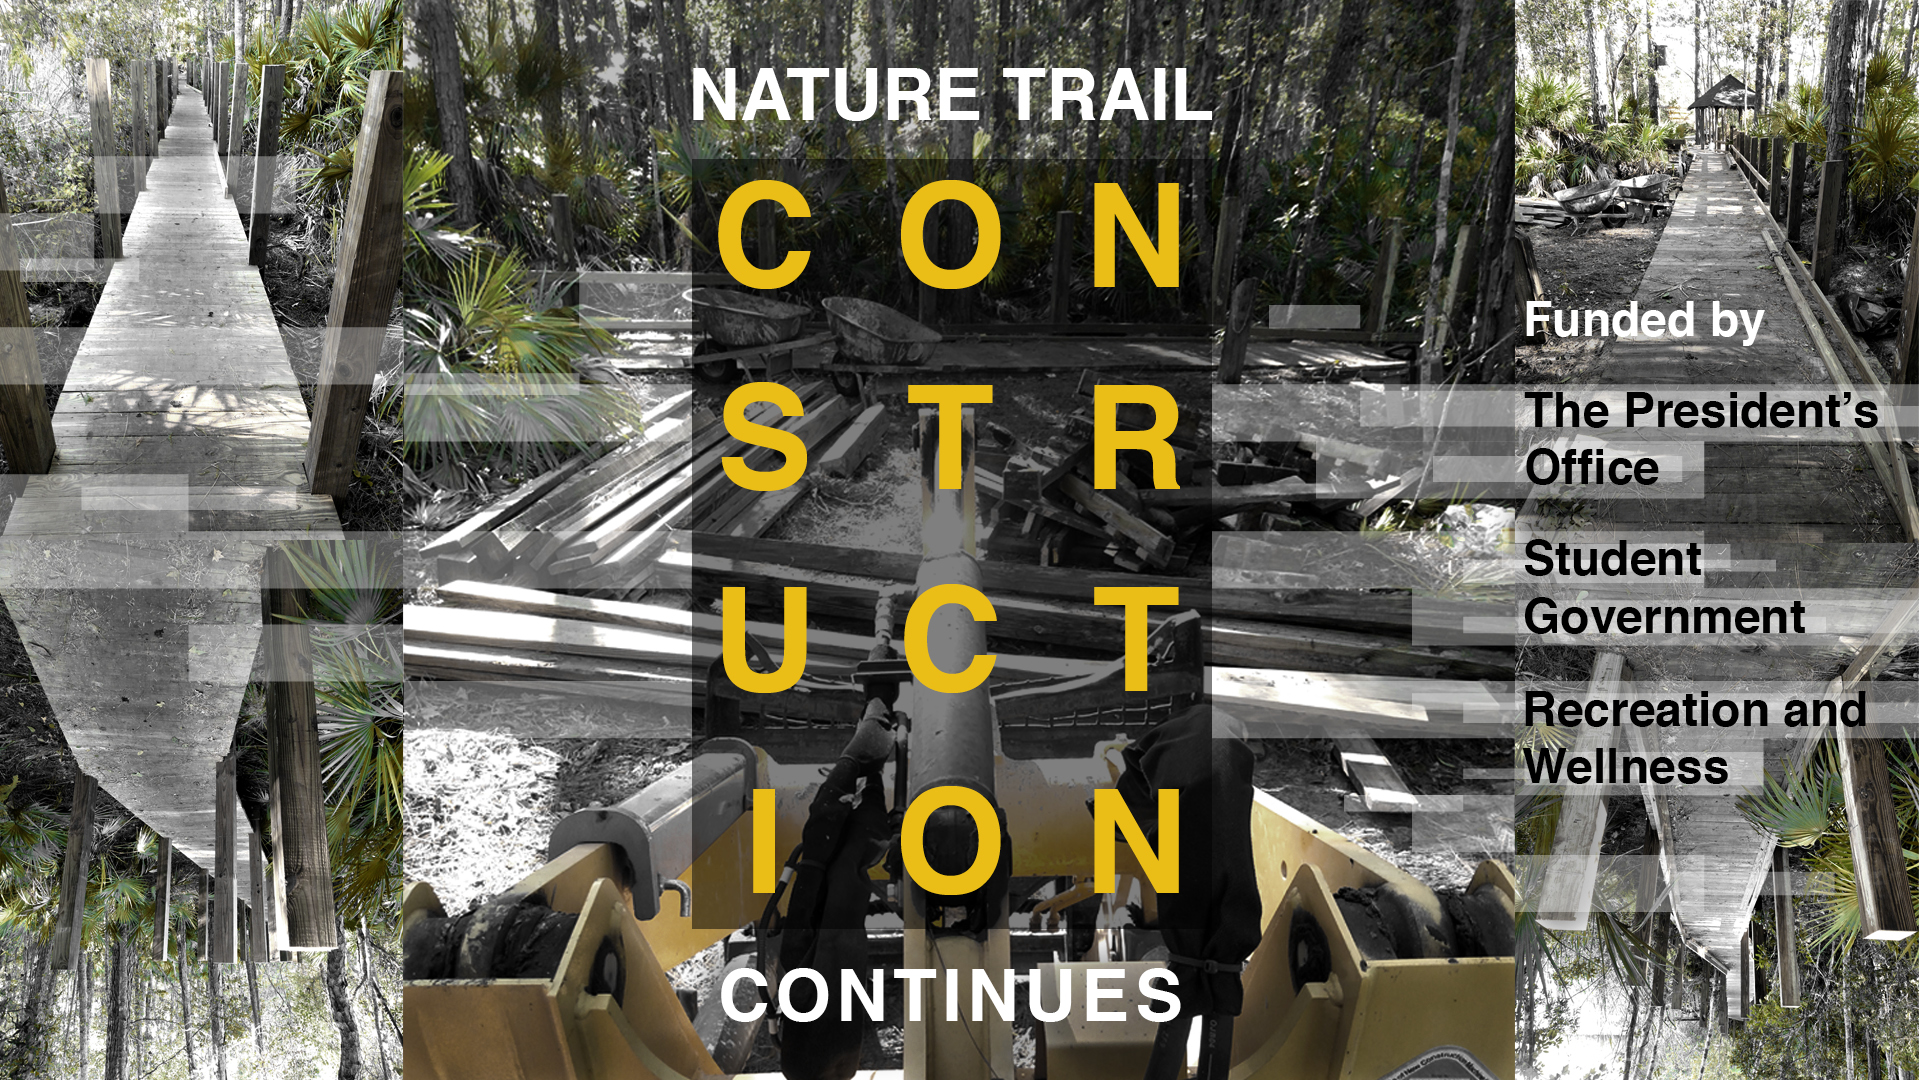 Nature trail construction continues